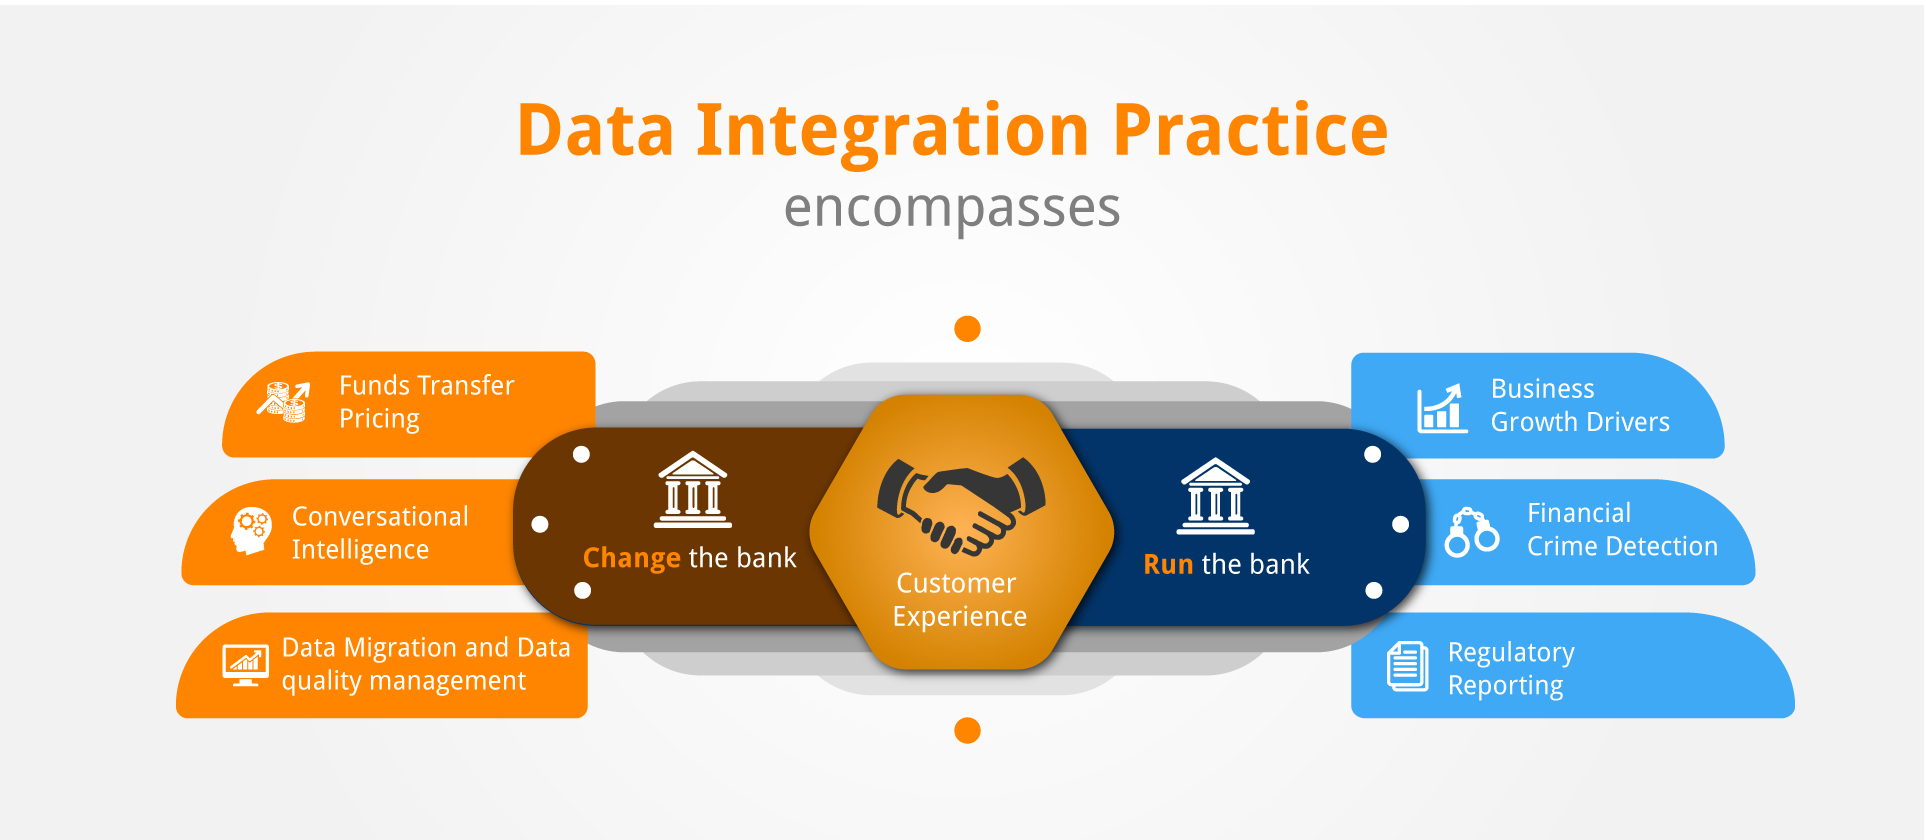 Data Integration Practice